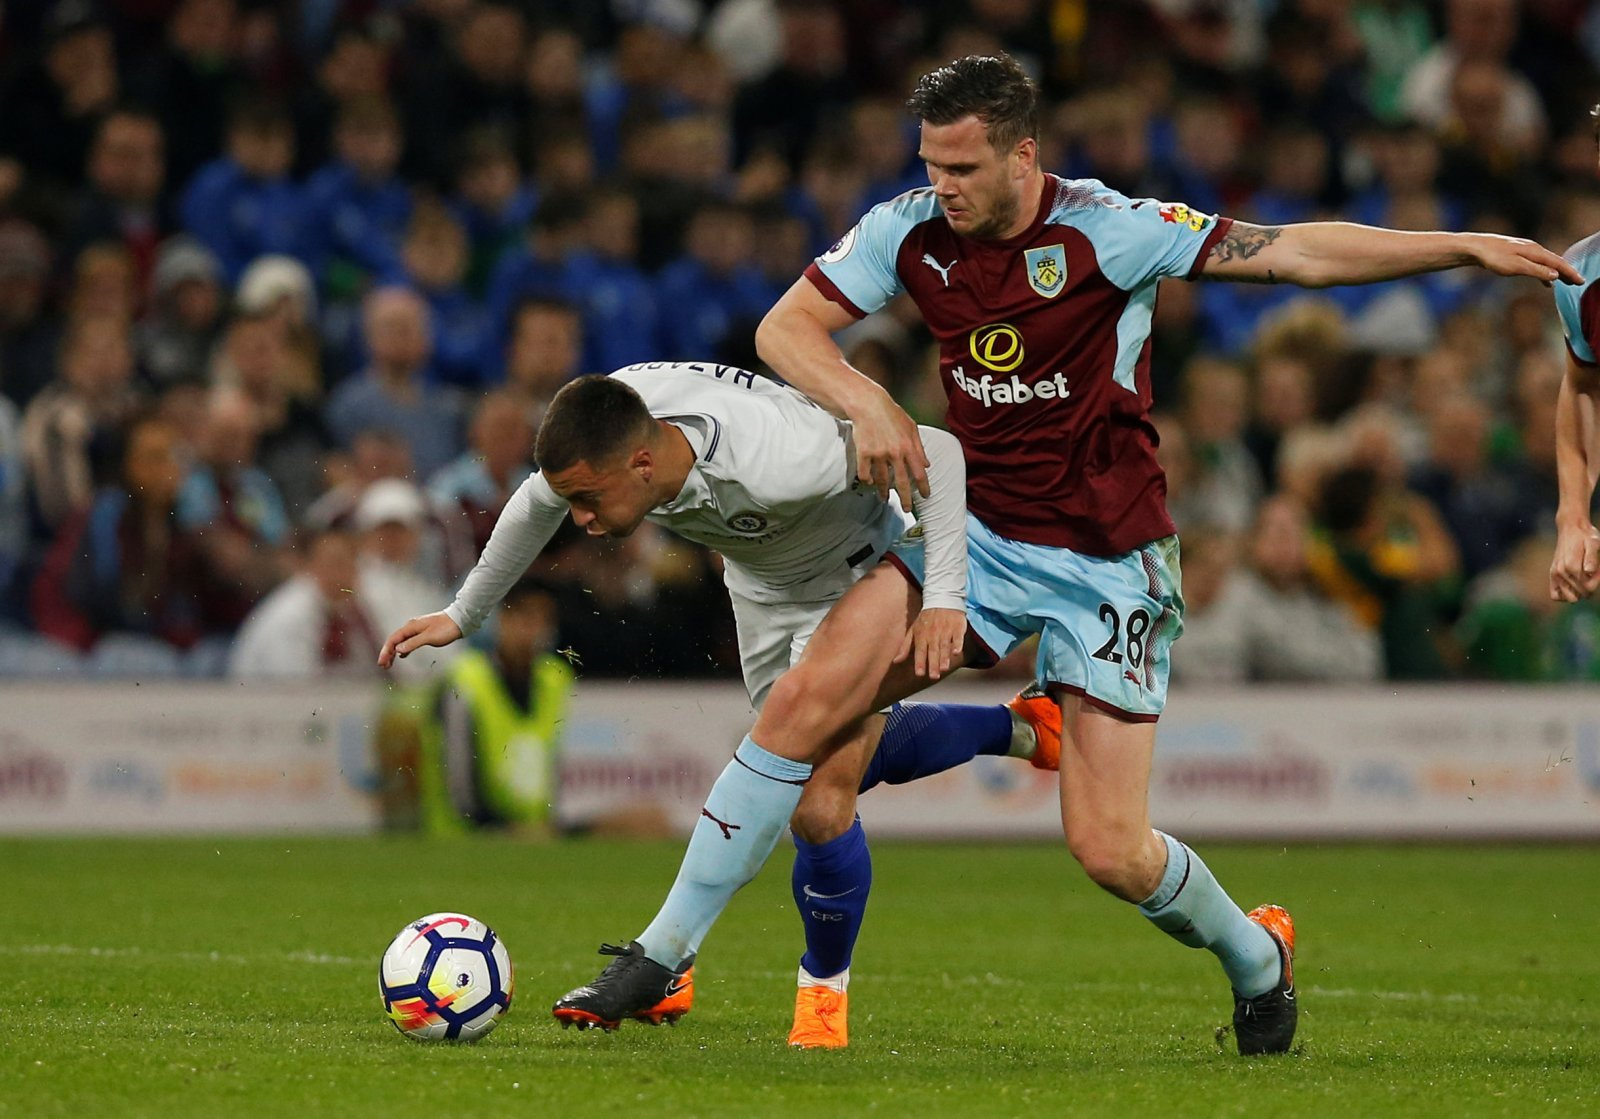 Domino effect: Dawson to Burnley could open the door for Leeds to move for Long